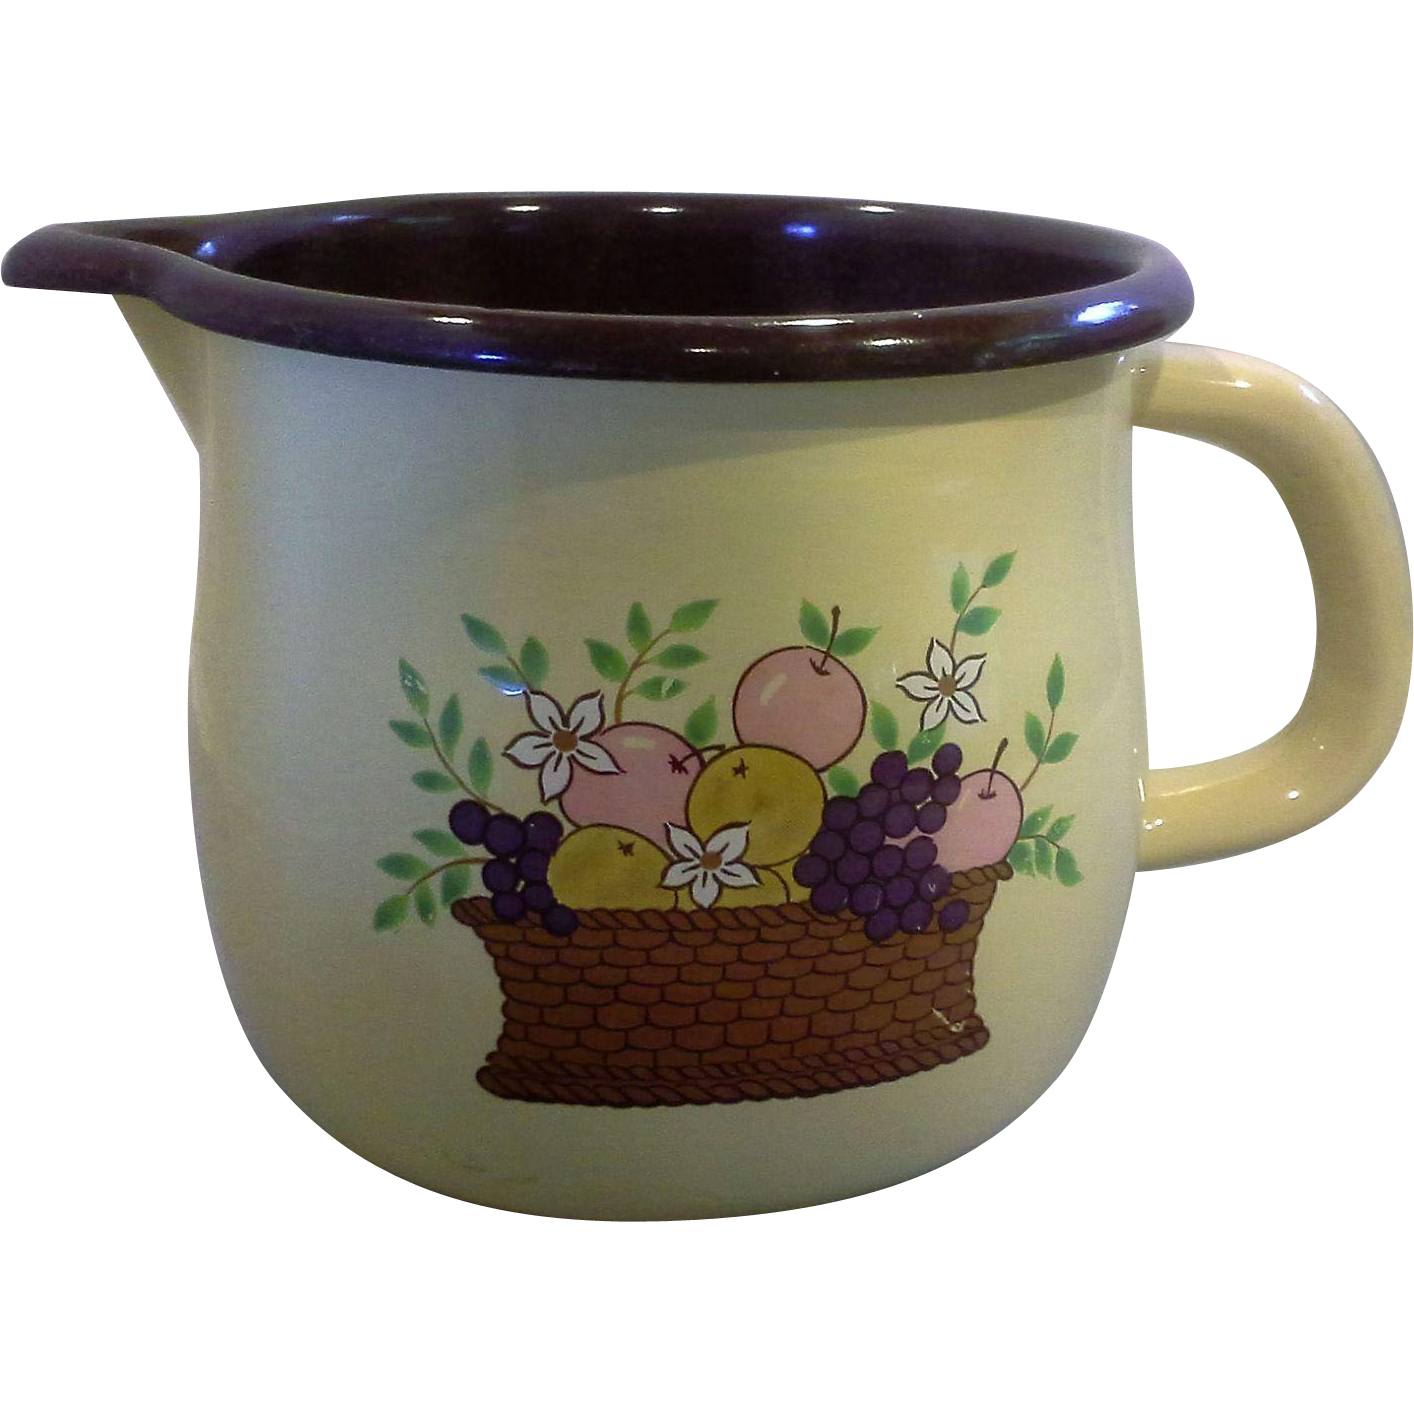 FTD Enamel Brown Fruit Basket Pitcher Made in Taiwan 1988